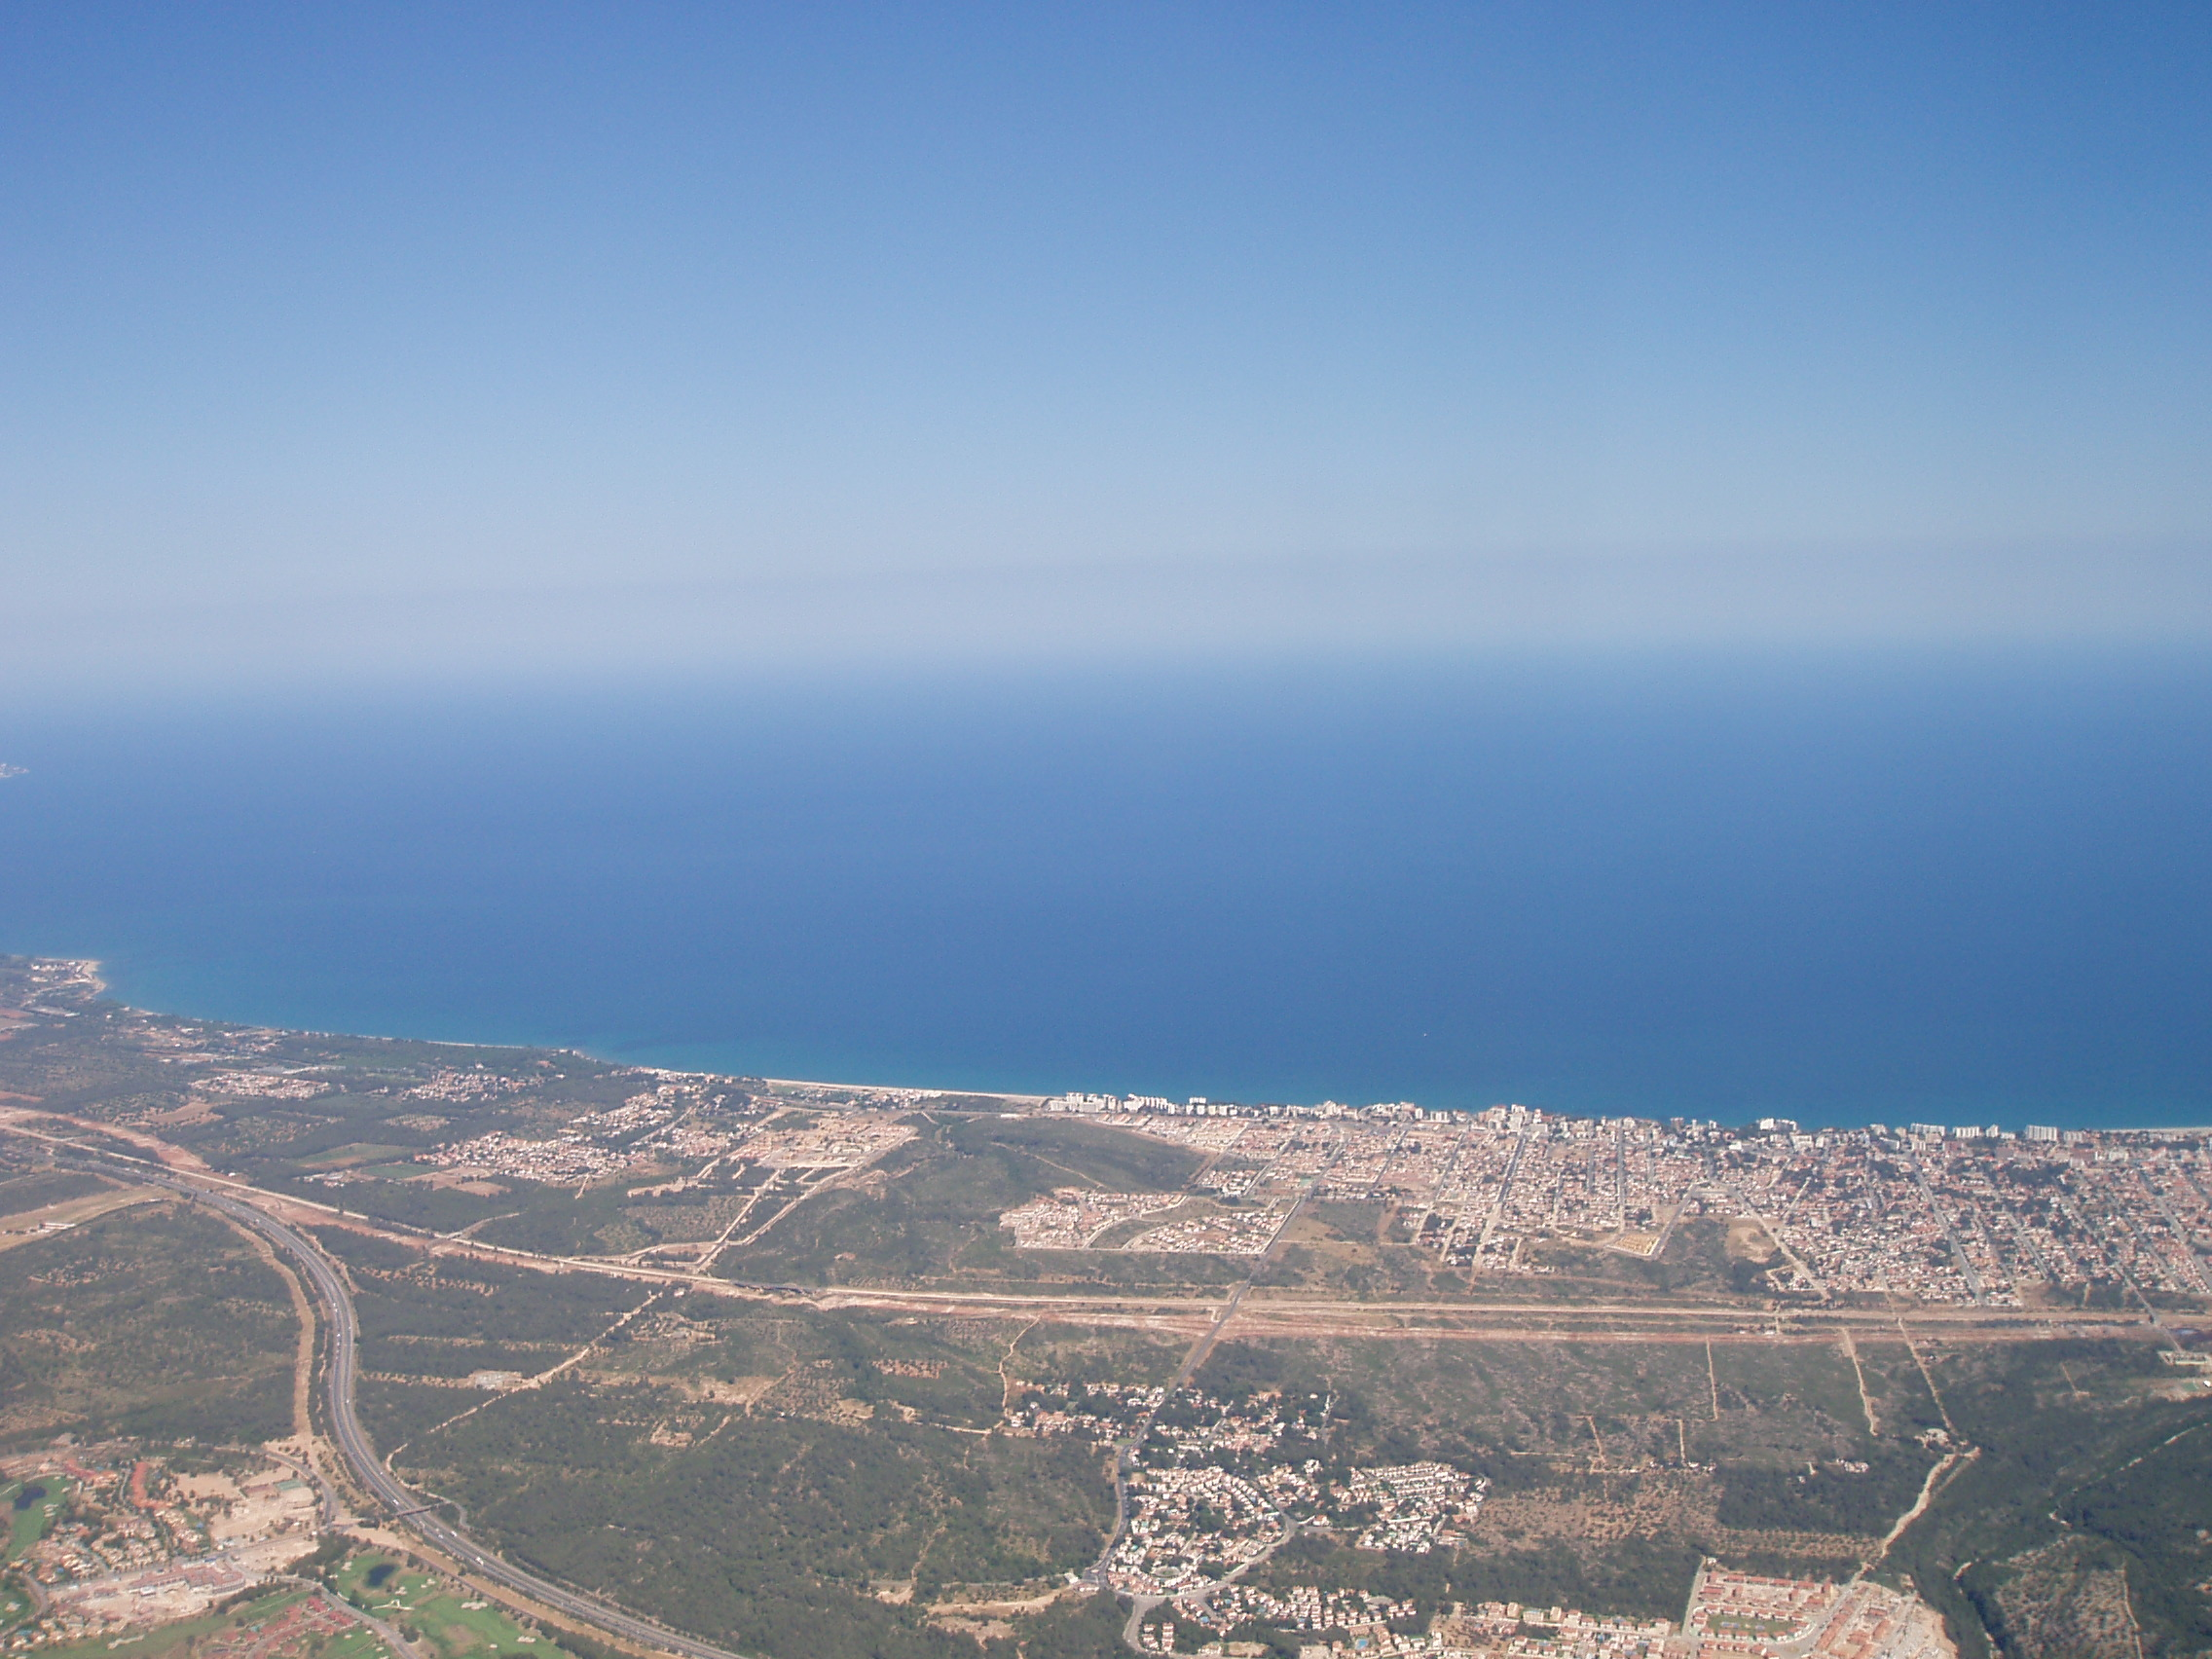 Miami Platja Spain  city photos gallery : Description Spanish Mediterranean coast at Miami Platja aerial view ...